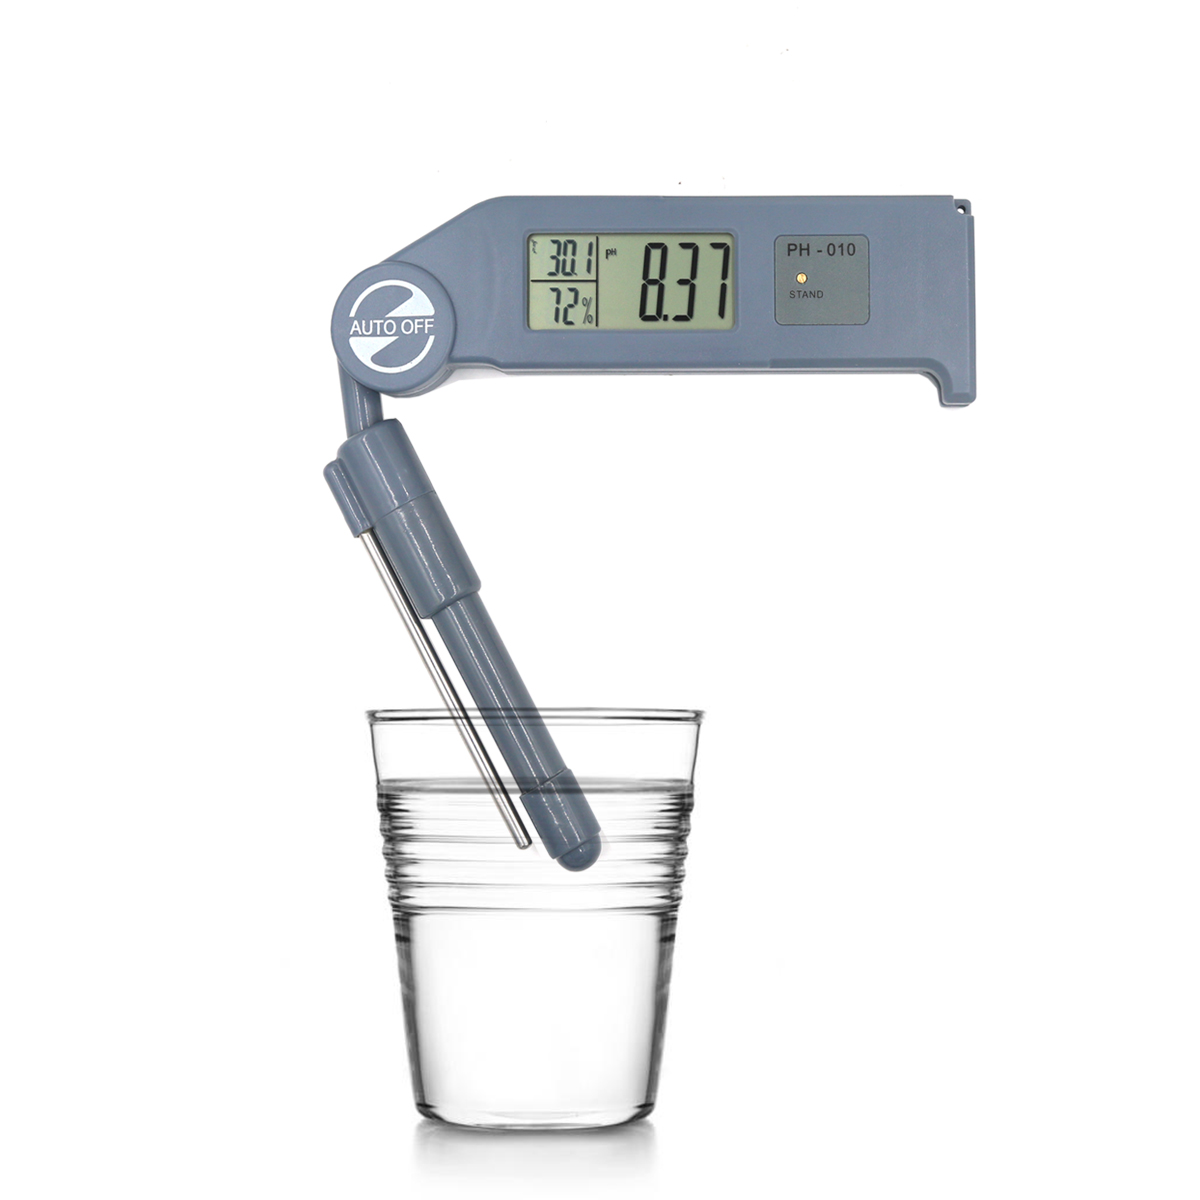 Folding PH-010 3 in 1 pH Meter High precision Portable Digital LED pH/temperature/humidity Water Quality Tester analyzer